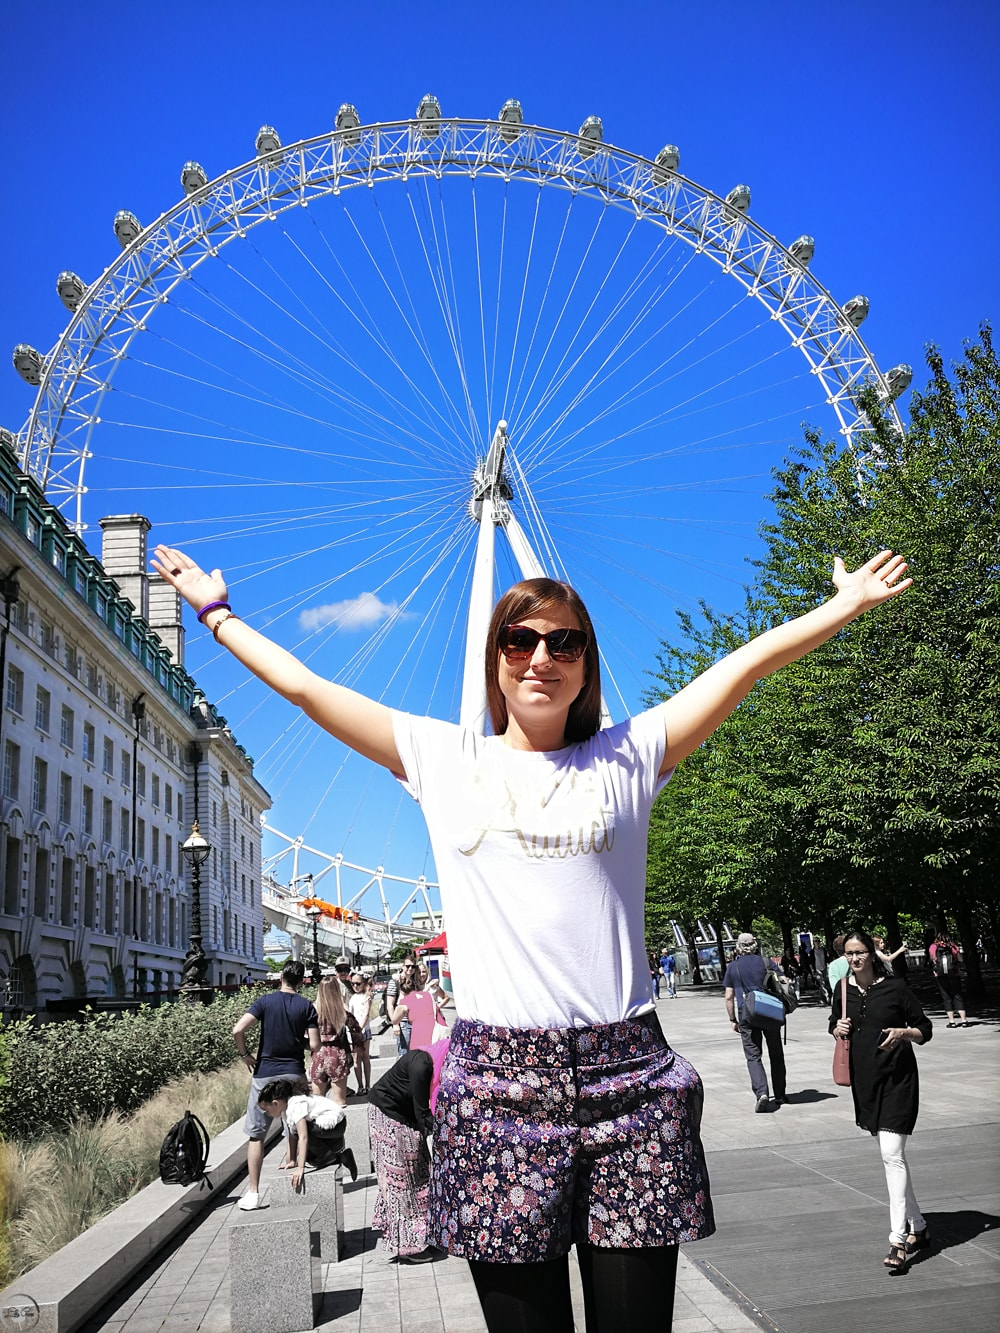 The London Eye and I